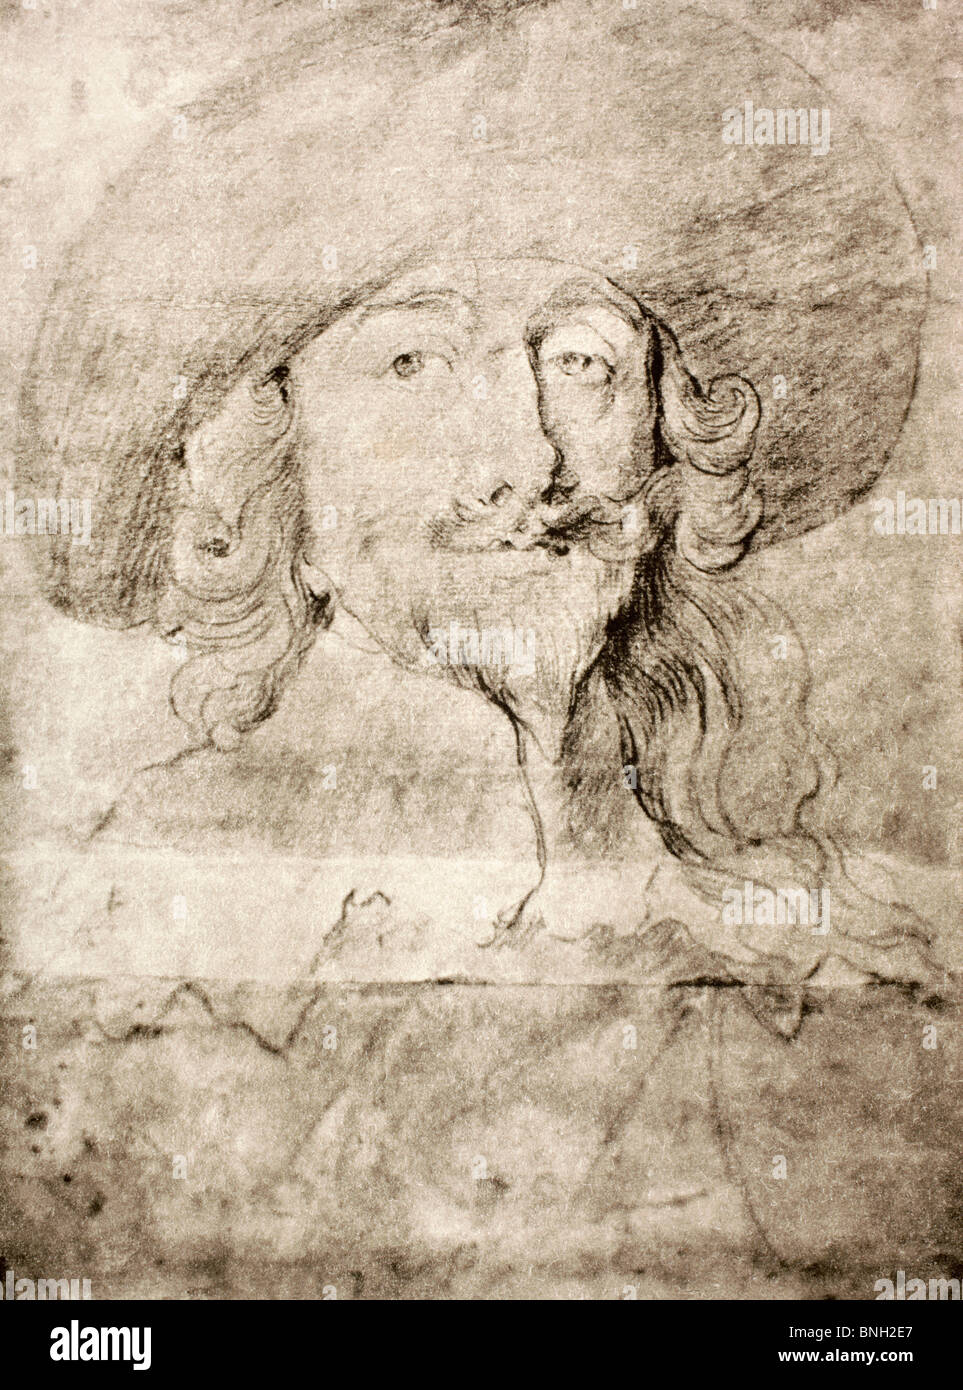 King Charles I of England 1600 - 1649. After a drawing by Vandyck. - Stock Image